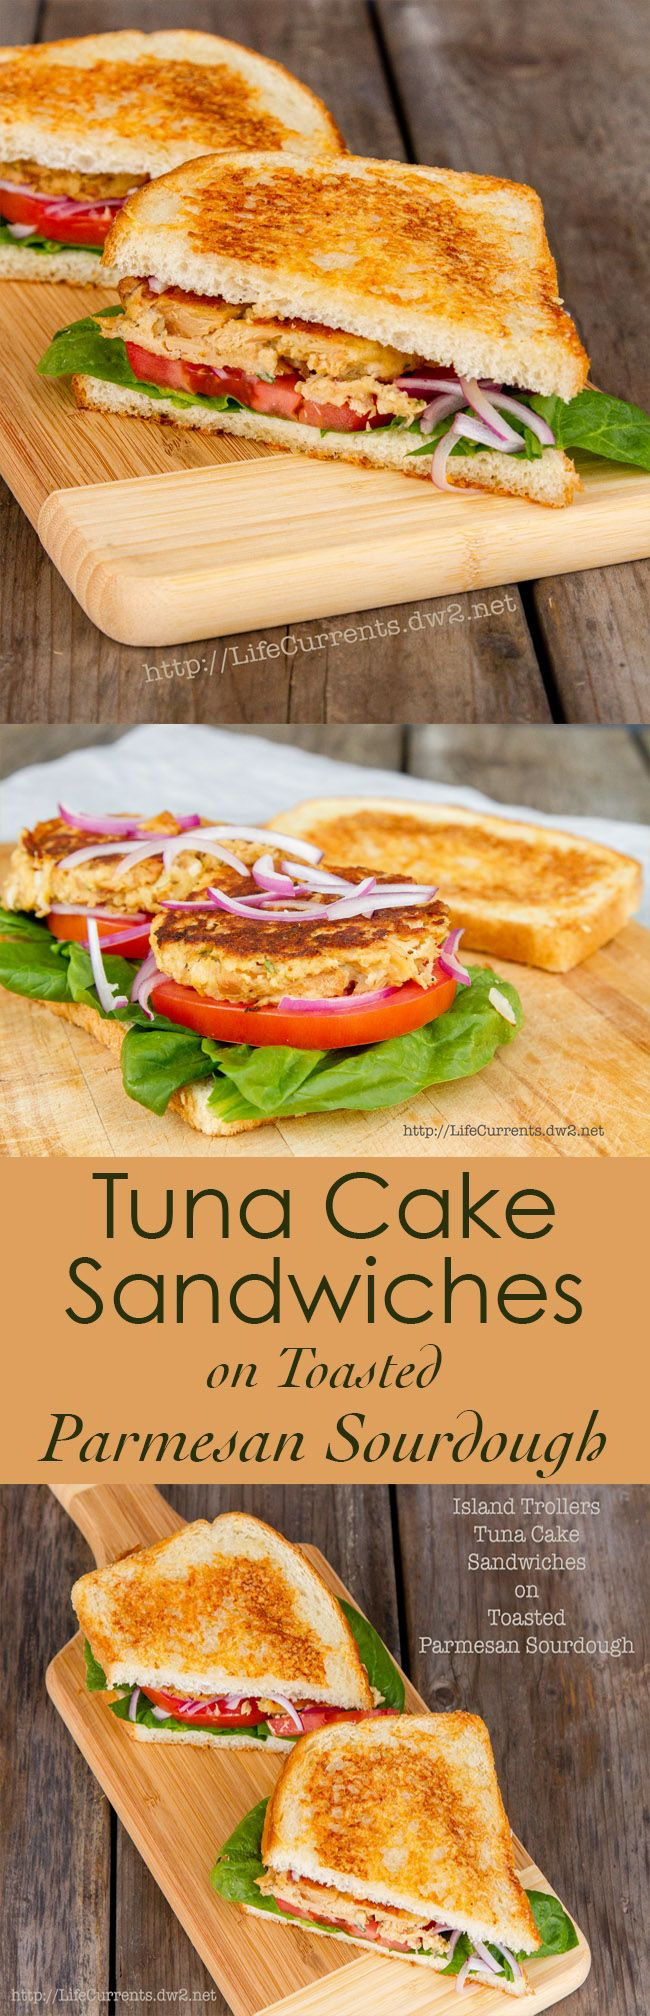 Tuna Cake Sandwiches on Toasted Parmesan Sourdough a great satisfying lunch!